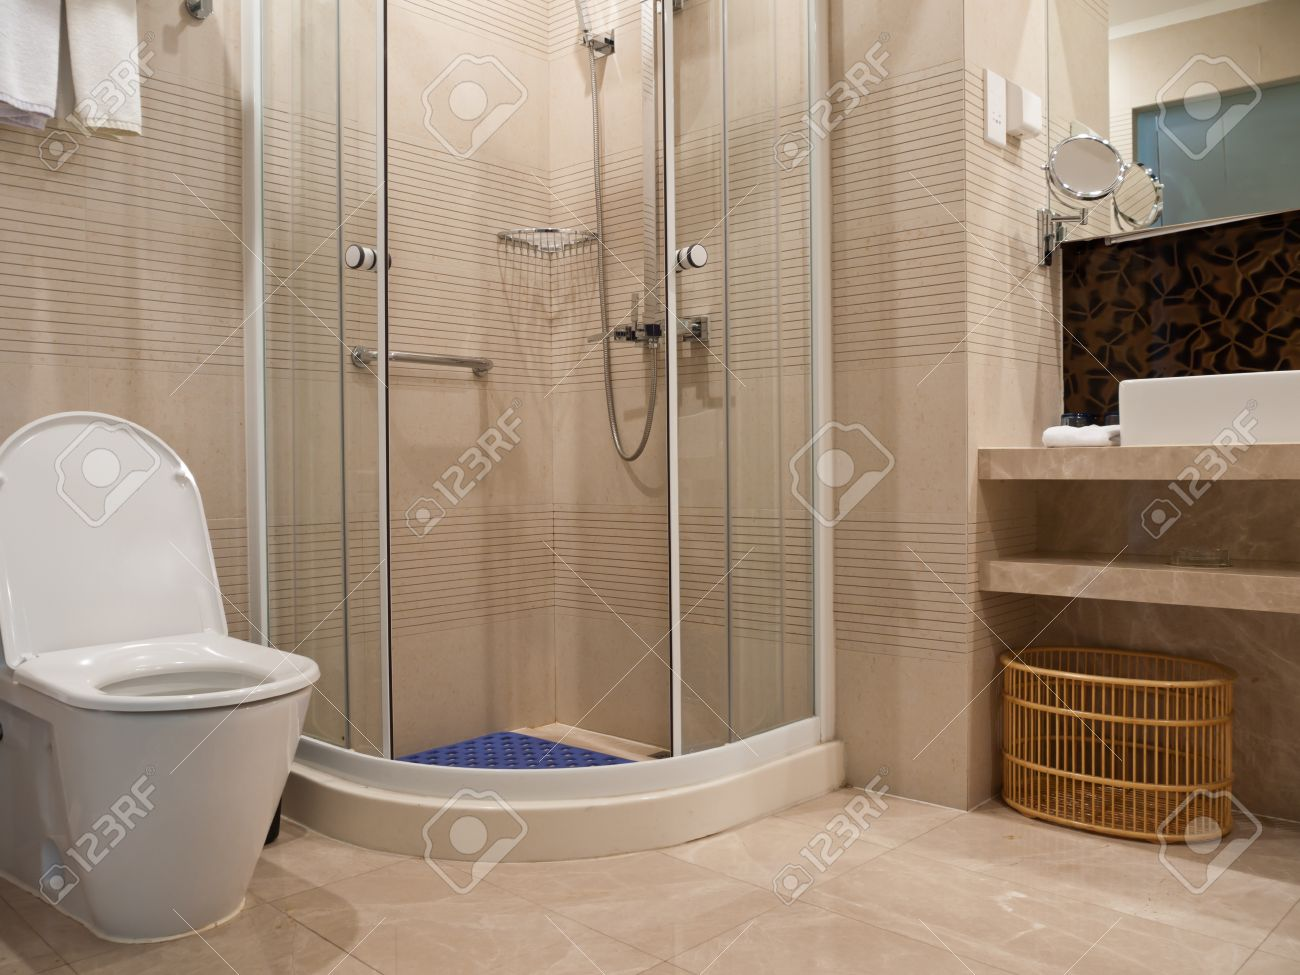 bathroom detail with toilet, basin, mirror and shower room,youngor